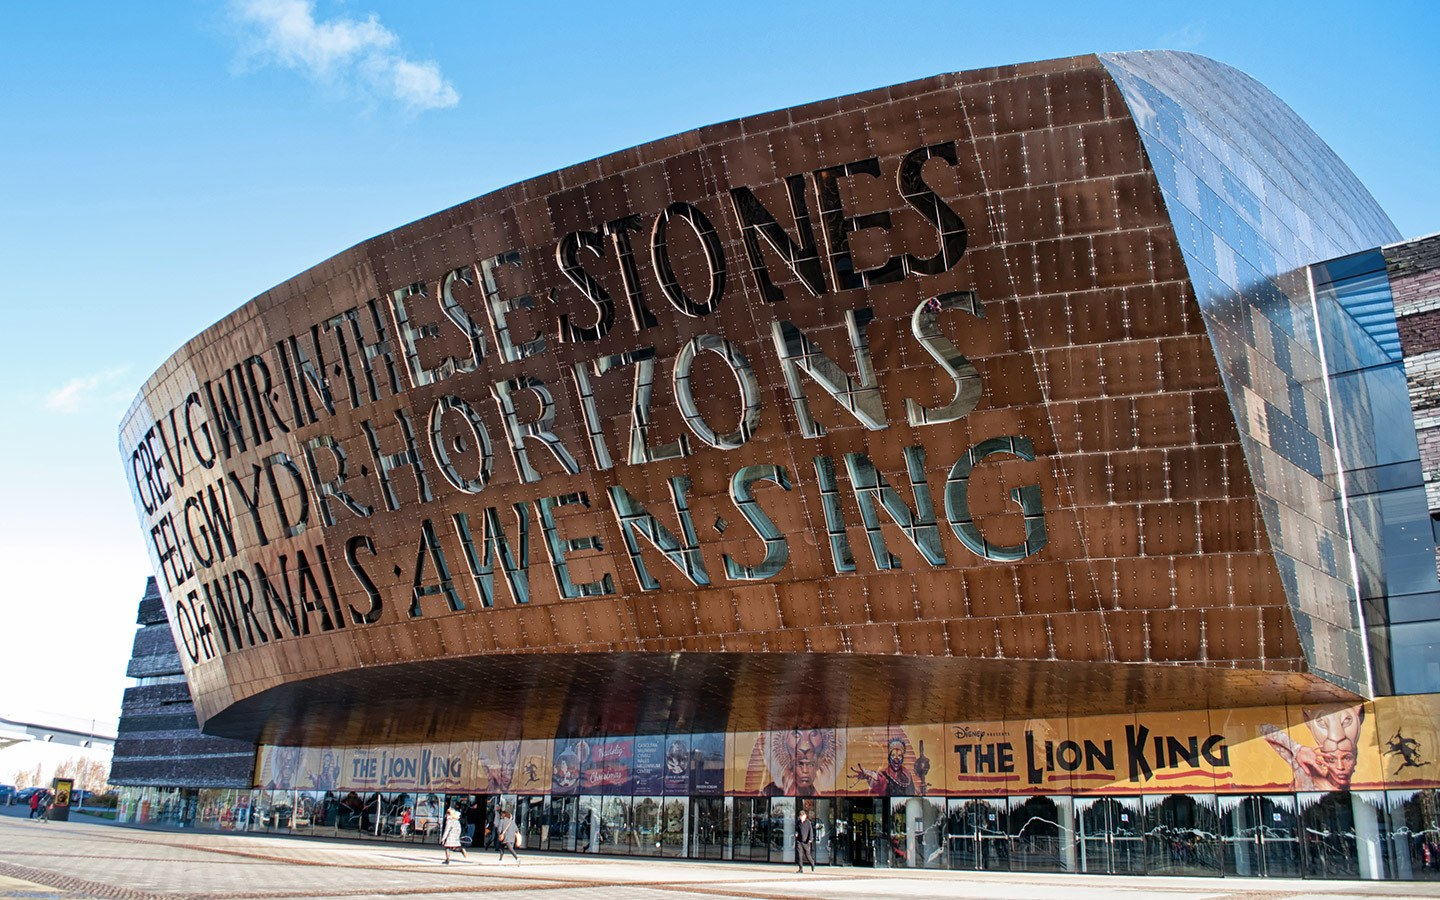 Millennium Centre in Cardiff Bay, Wales